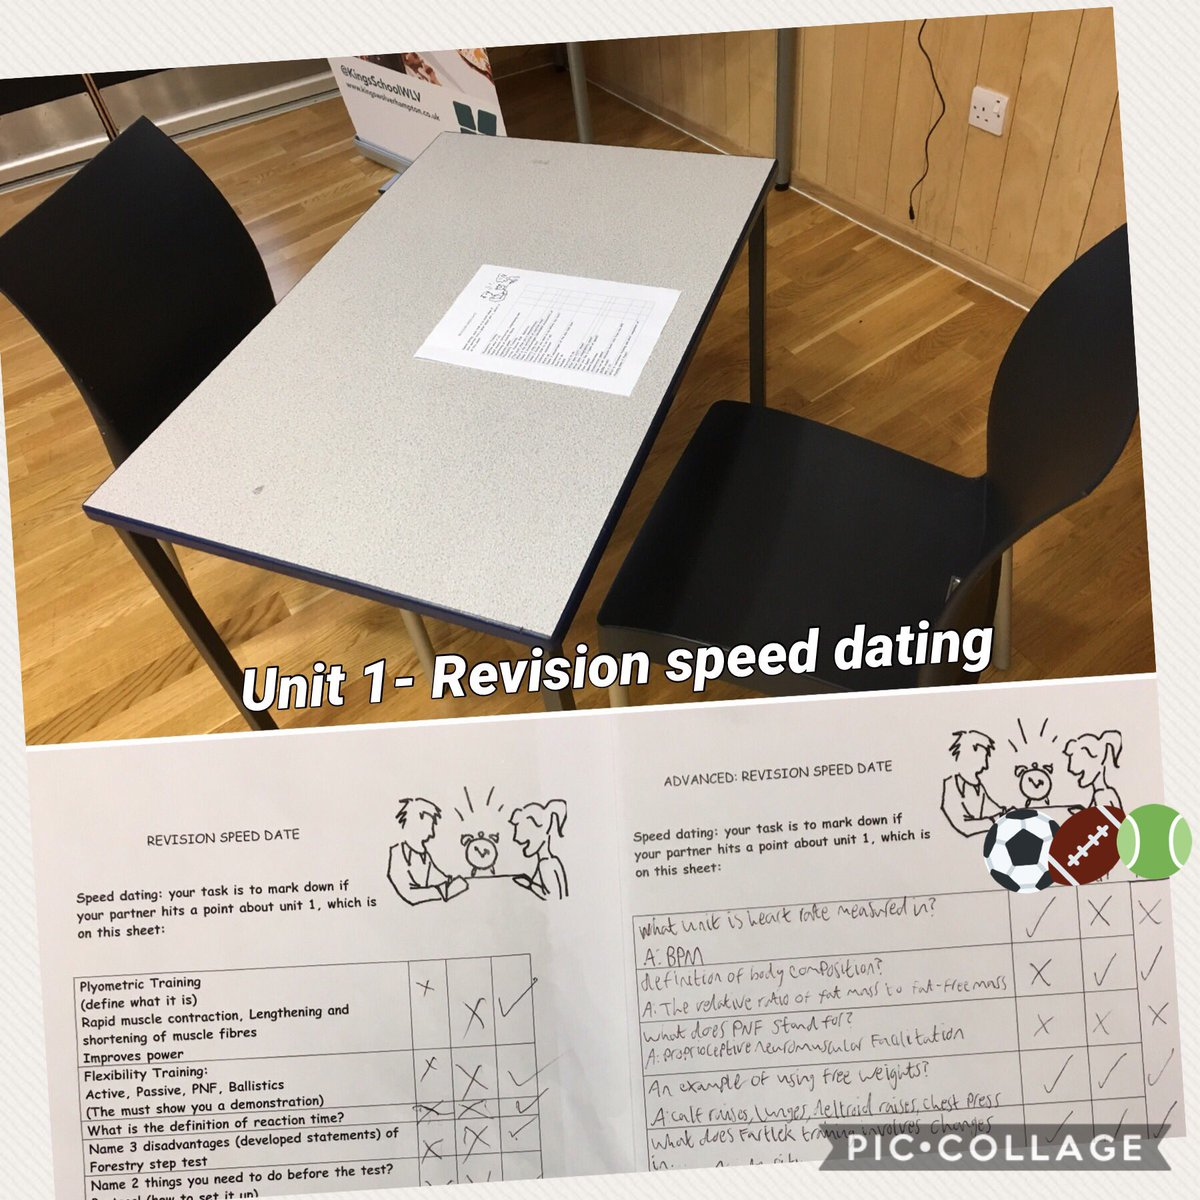 Speed dating training activity definition